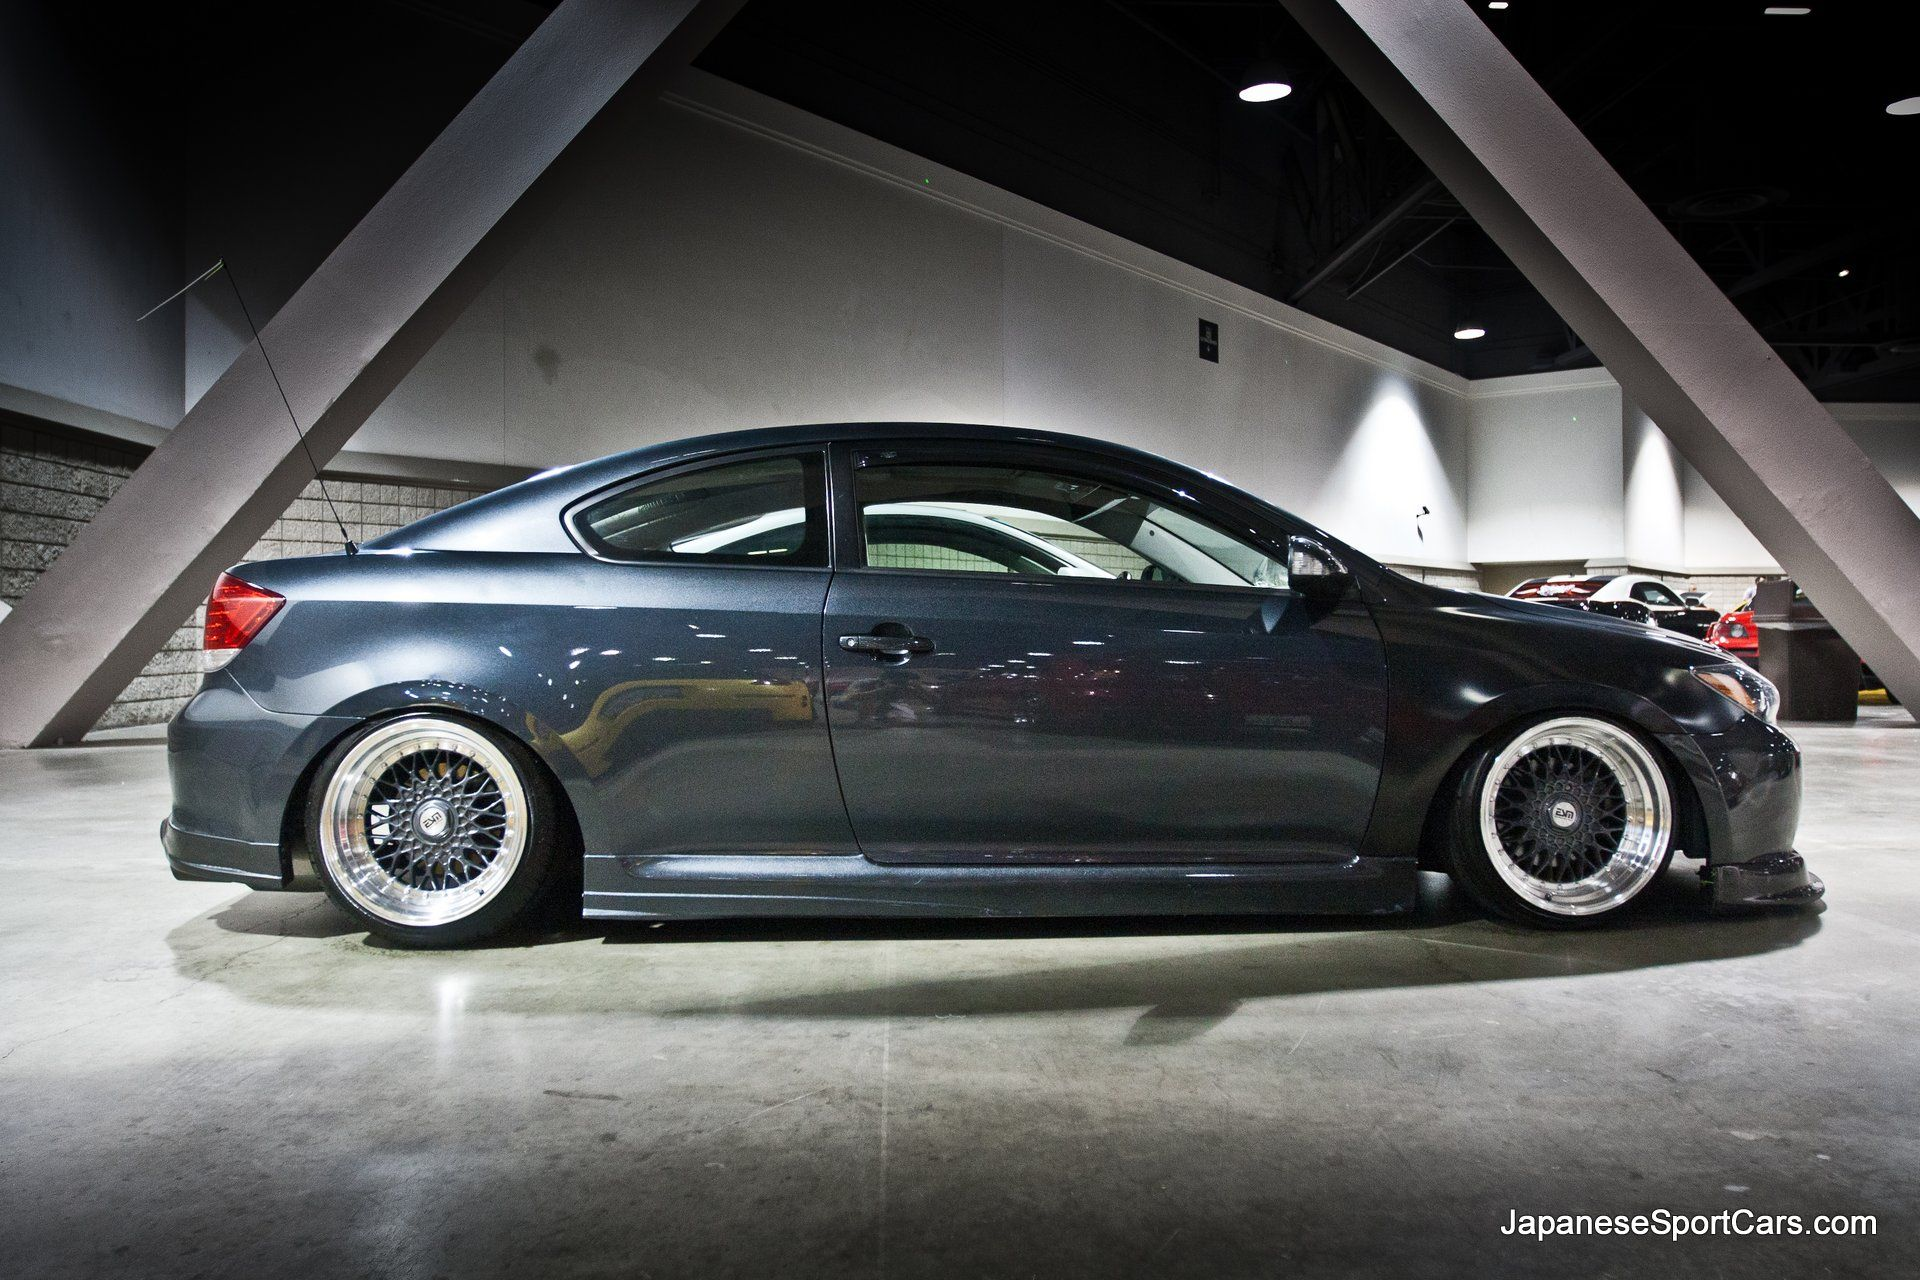 Image Detail For Scion Tc 1st Generation 2005 2010 With Esm 002r Wheels Pictures And Scion Tc Scion Cars Motorcycles